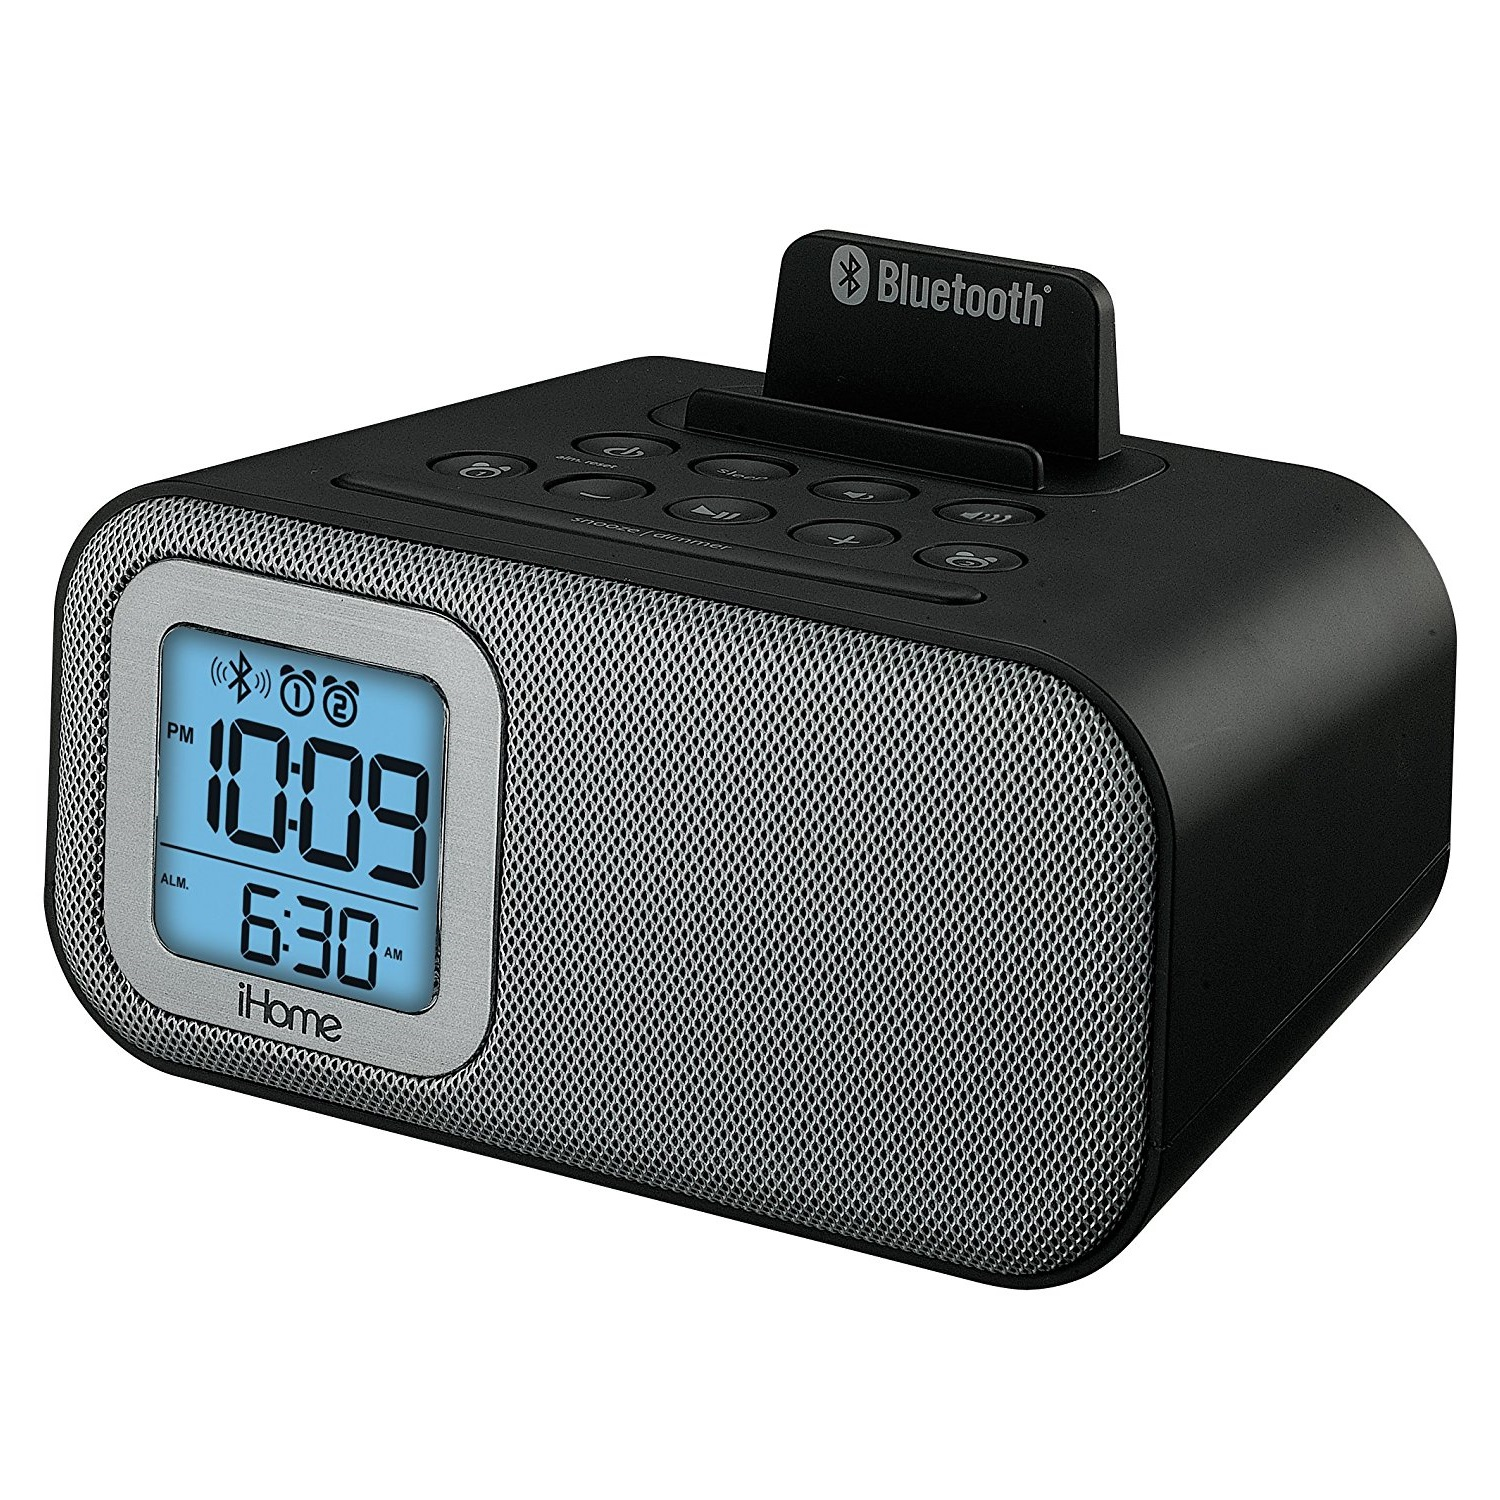 iHome Wireless Bluetooth Dual Alarm Clock with USB Charging and Line-in